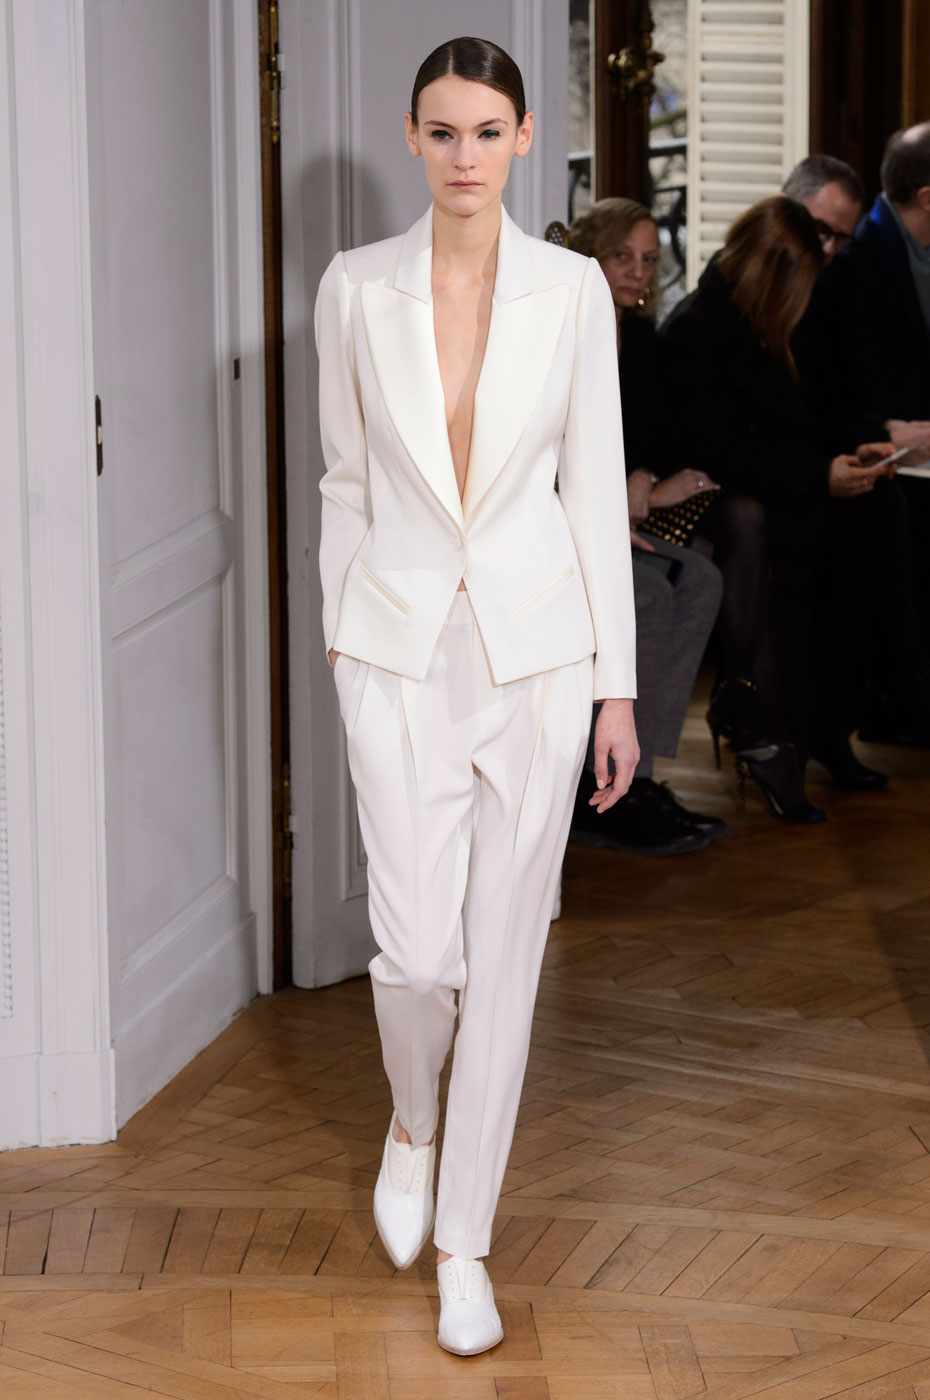 Bouchra-Jarrar-fashion-runway-show-haute-couture-paris-spring-summer-2015-the-impression-49